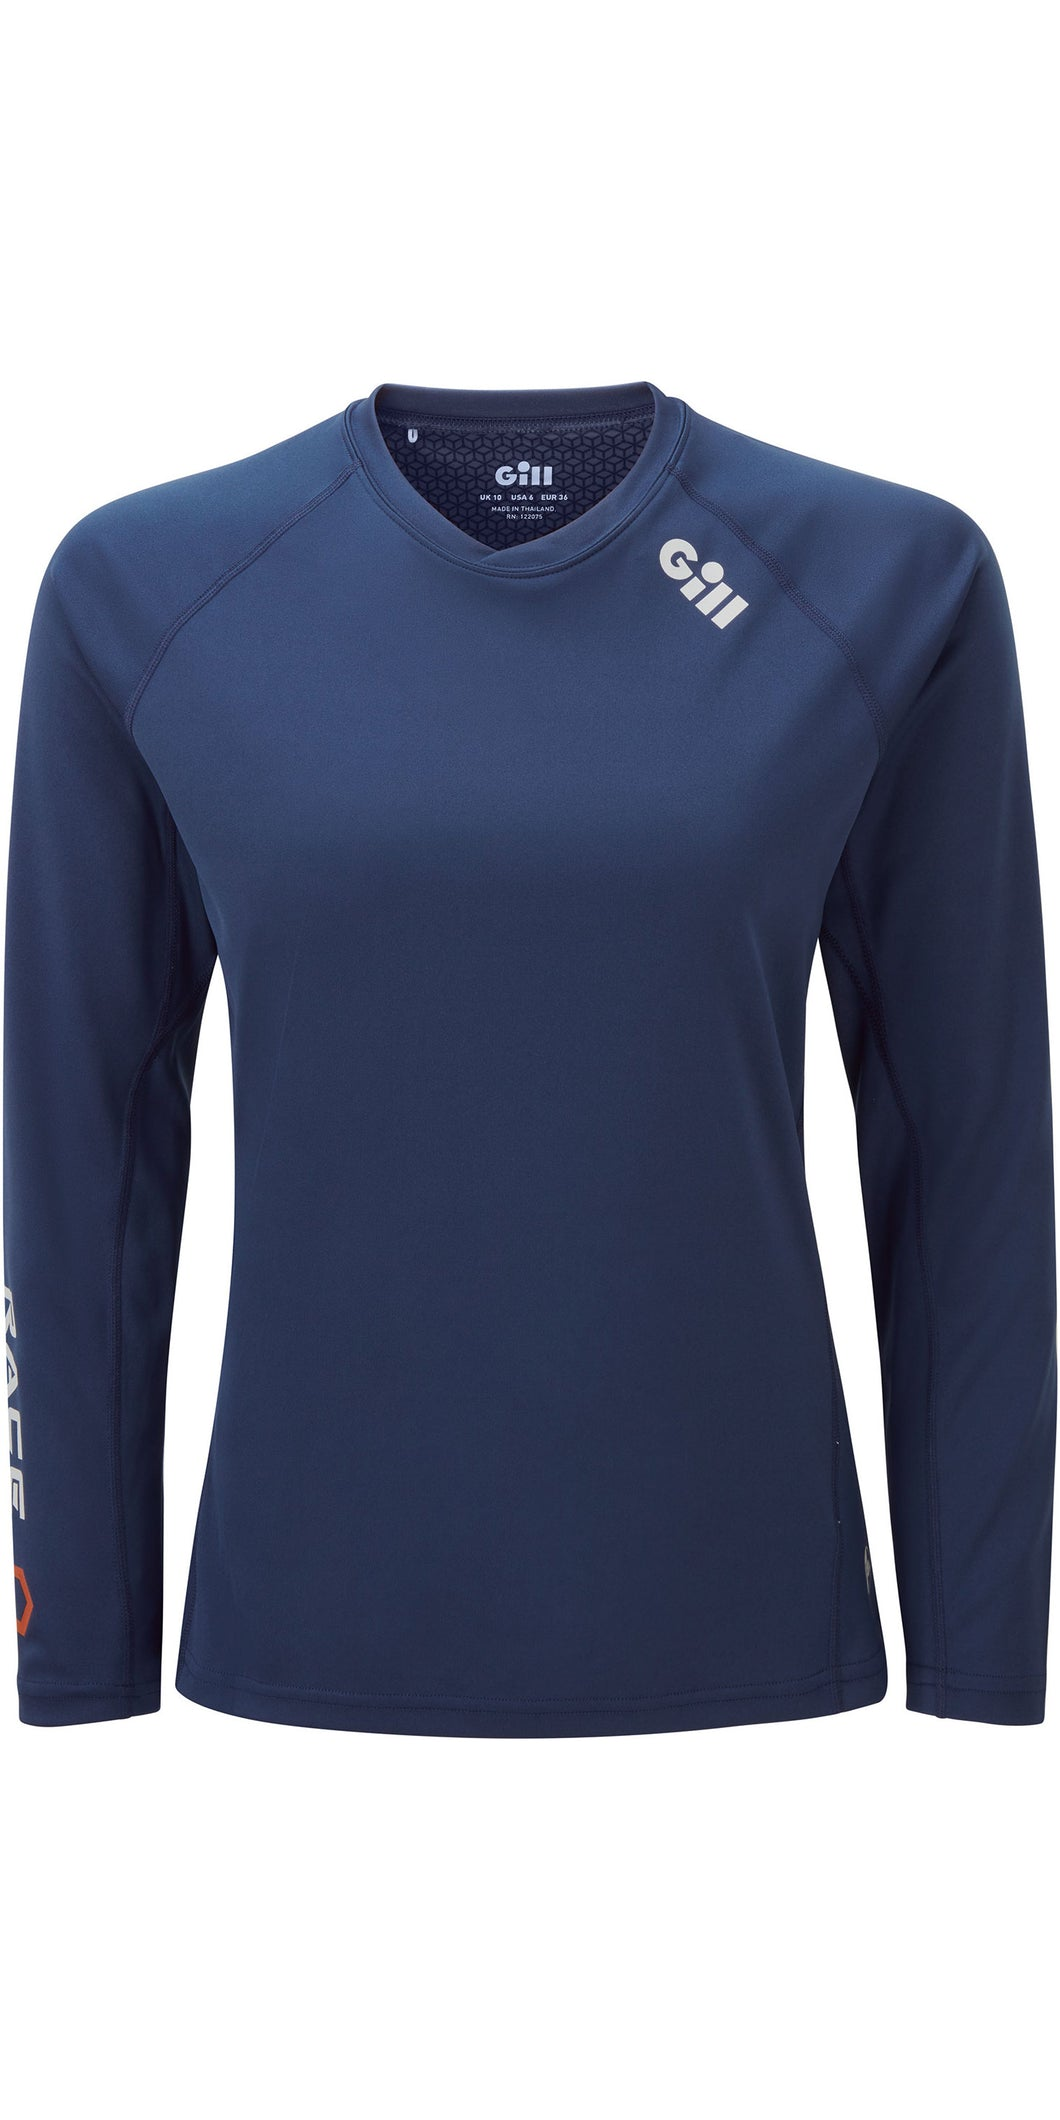 Gill Women's Race Long Sleeve Tee Dark Blue